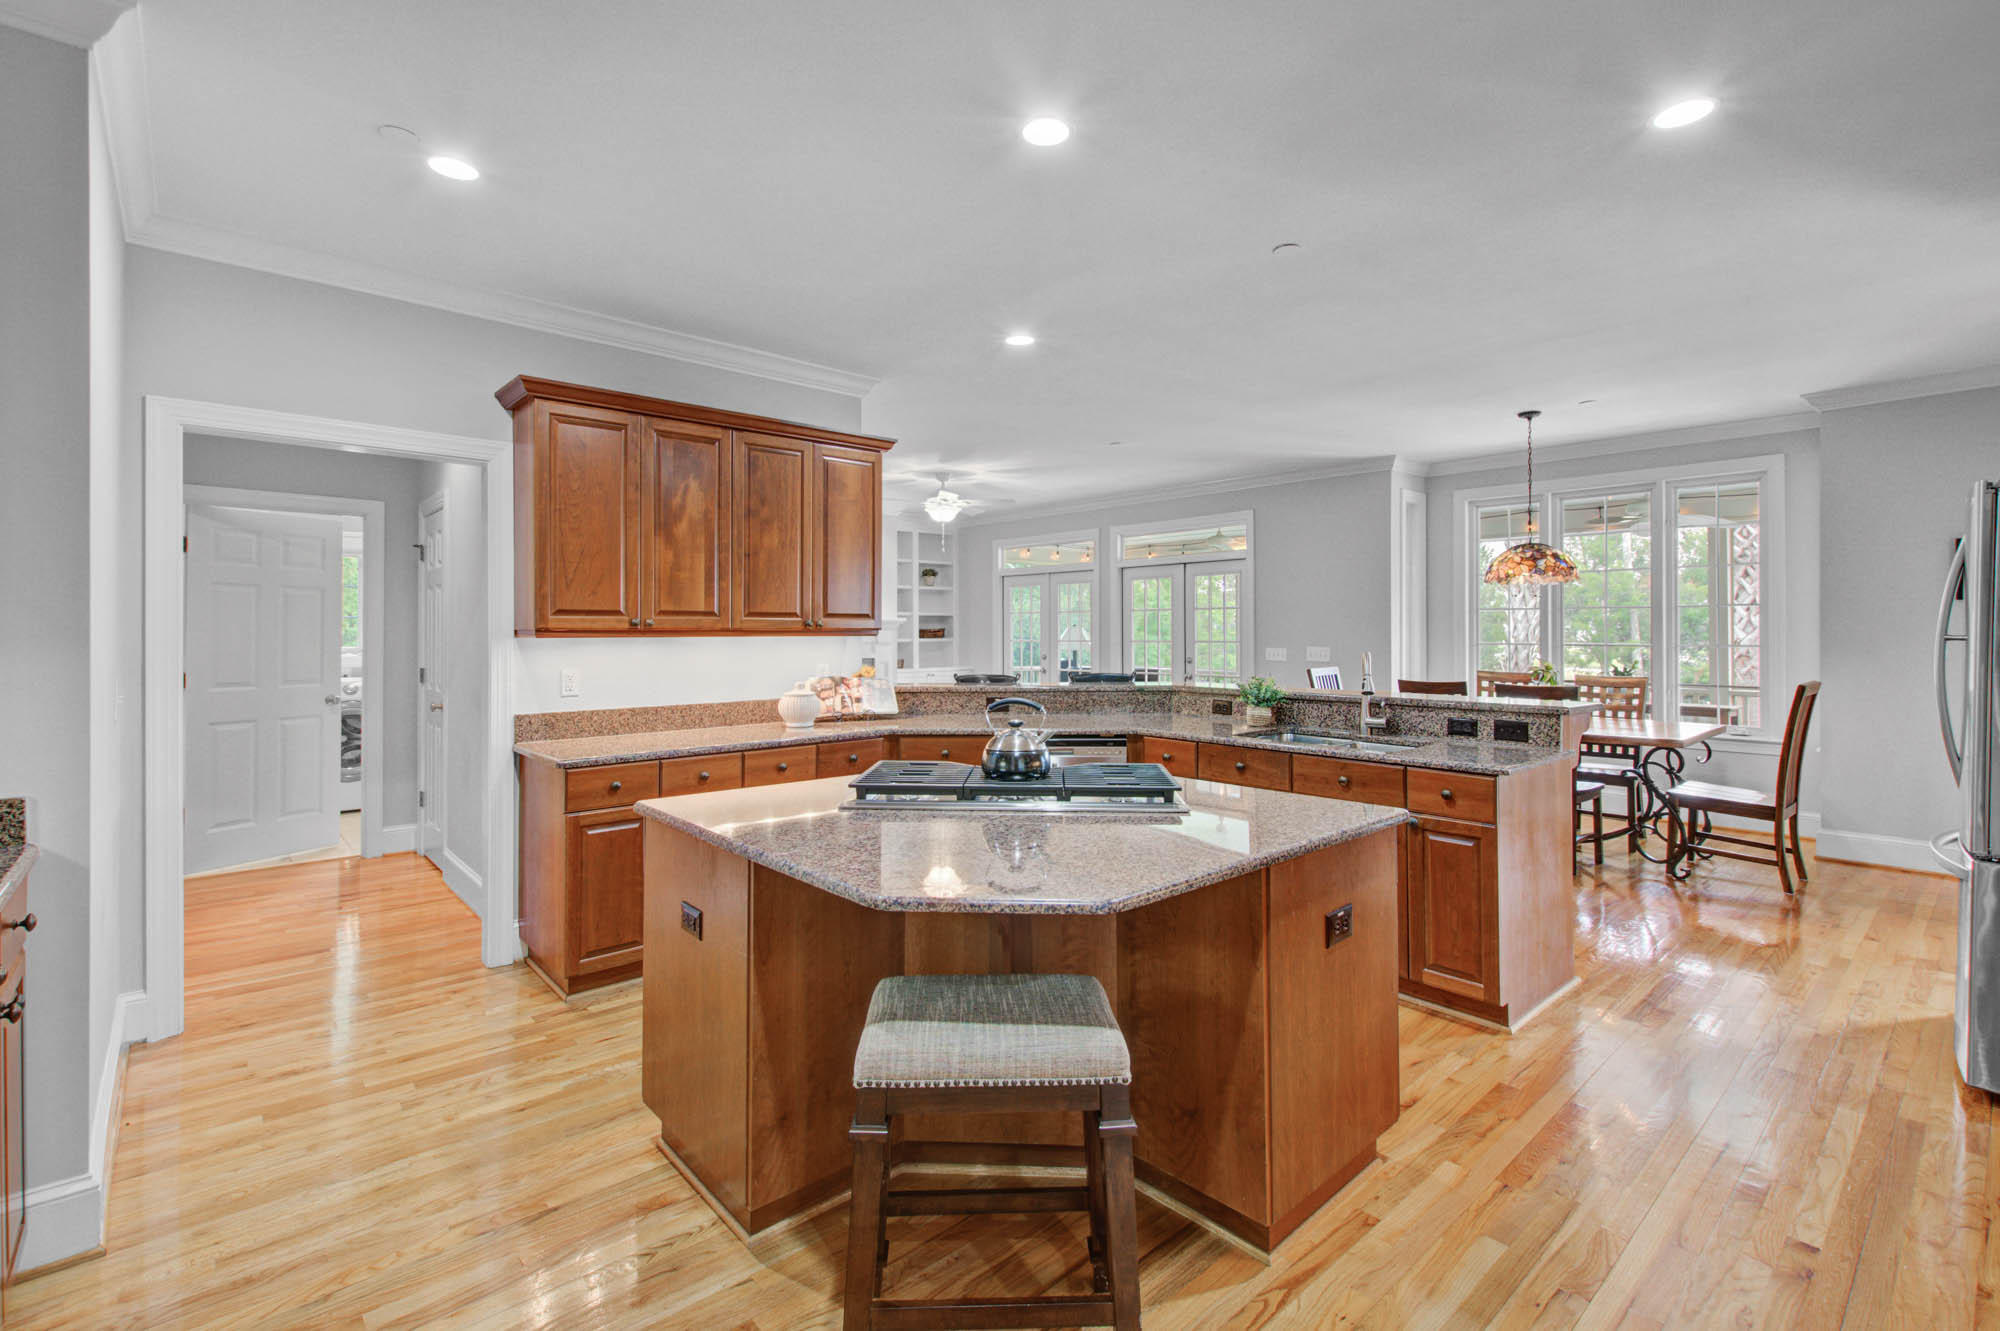 Dunes West Homes For Sale - 2069 Shell Ring, Mount Pleasant, SC - 32